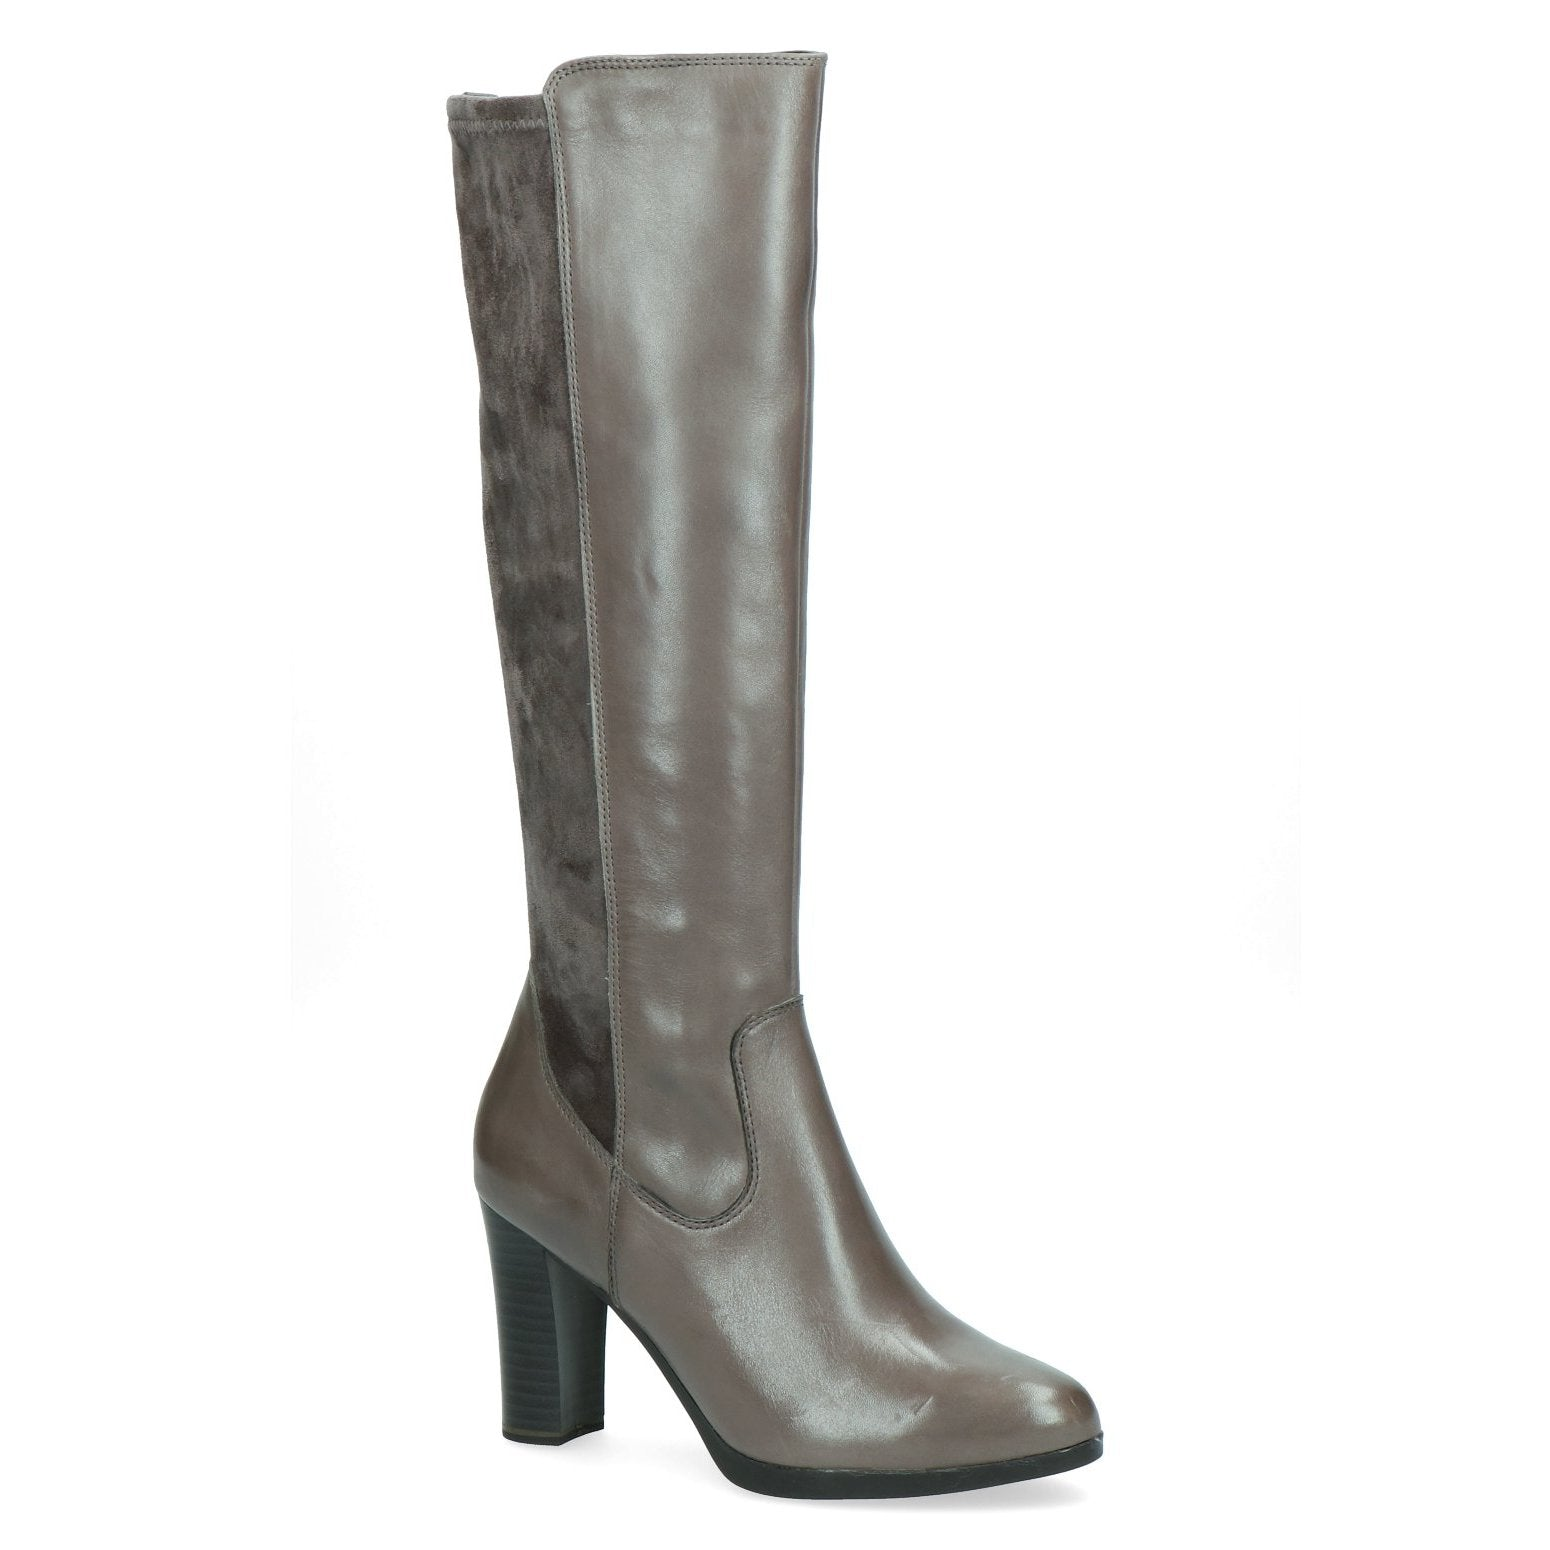 Knee High High Heel Narrow Leg Boot